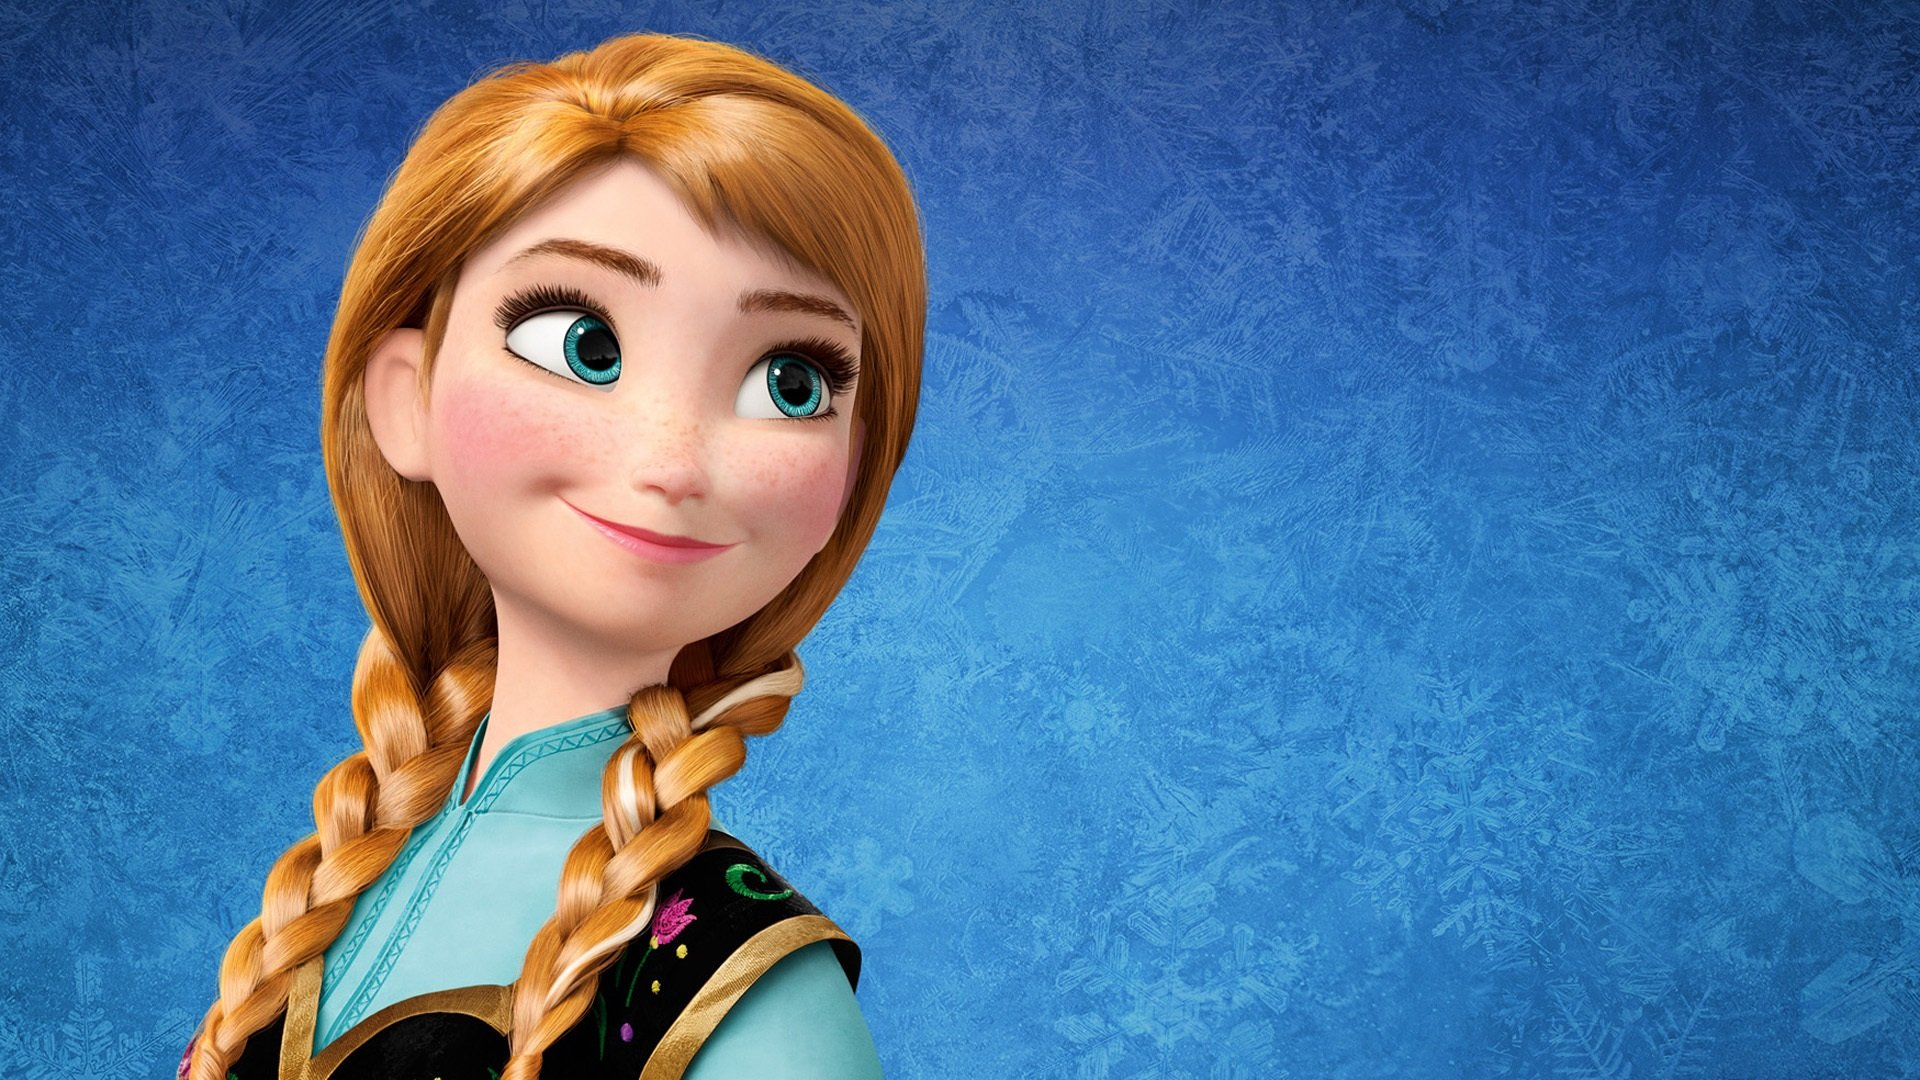 download elsa and anna wallpapers gallery. Black Bedroom Furniture Sets. Home Design Ideas